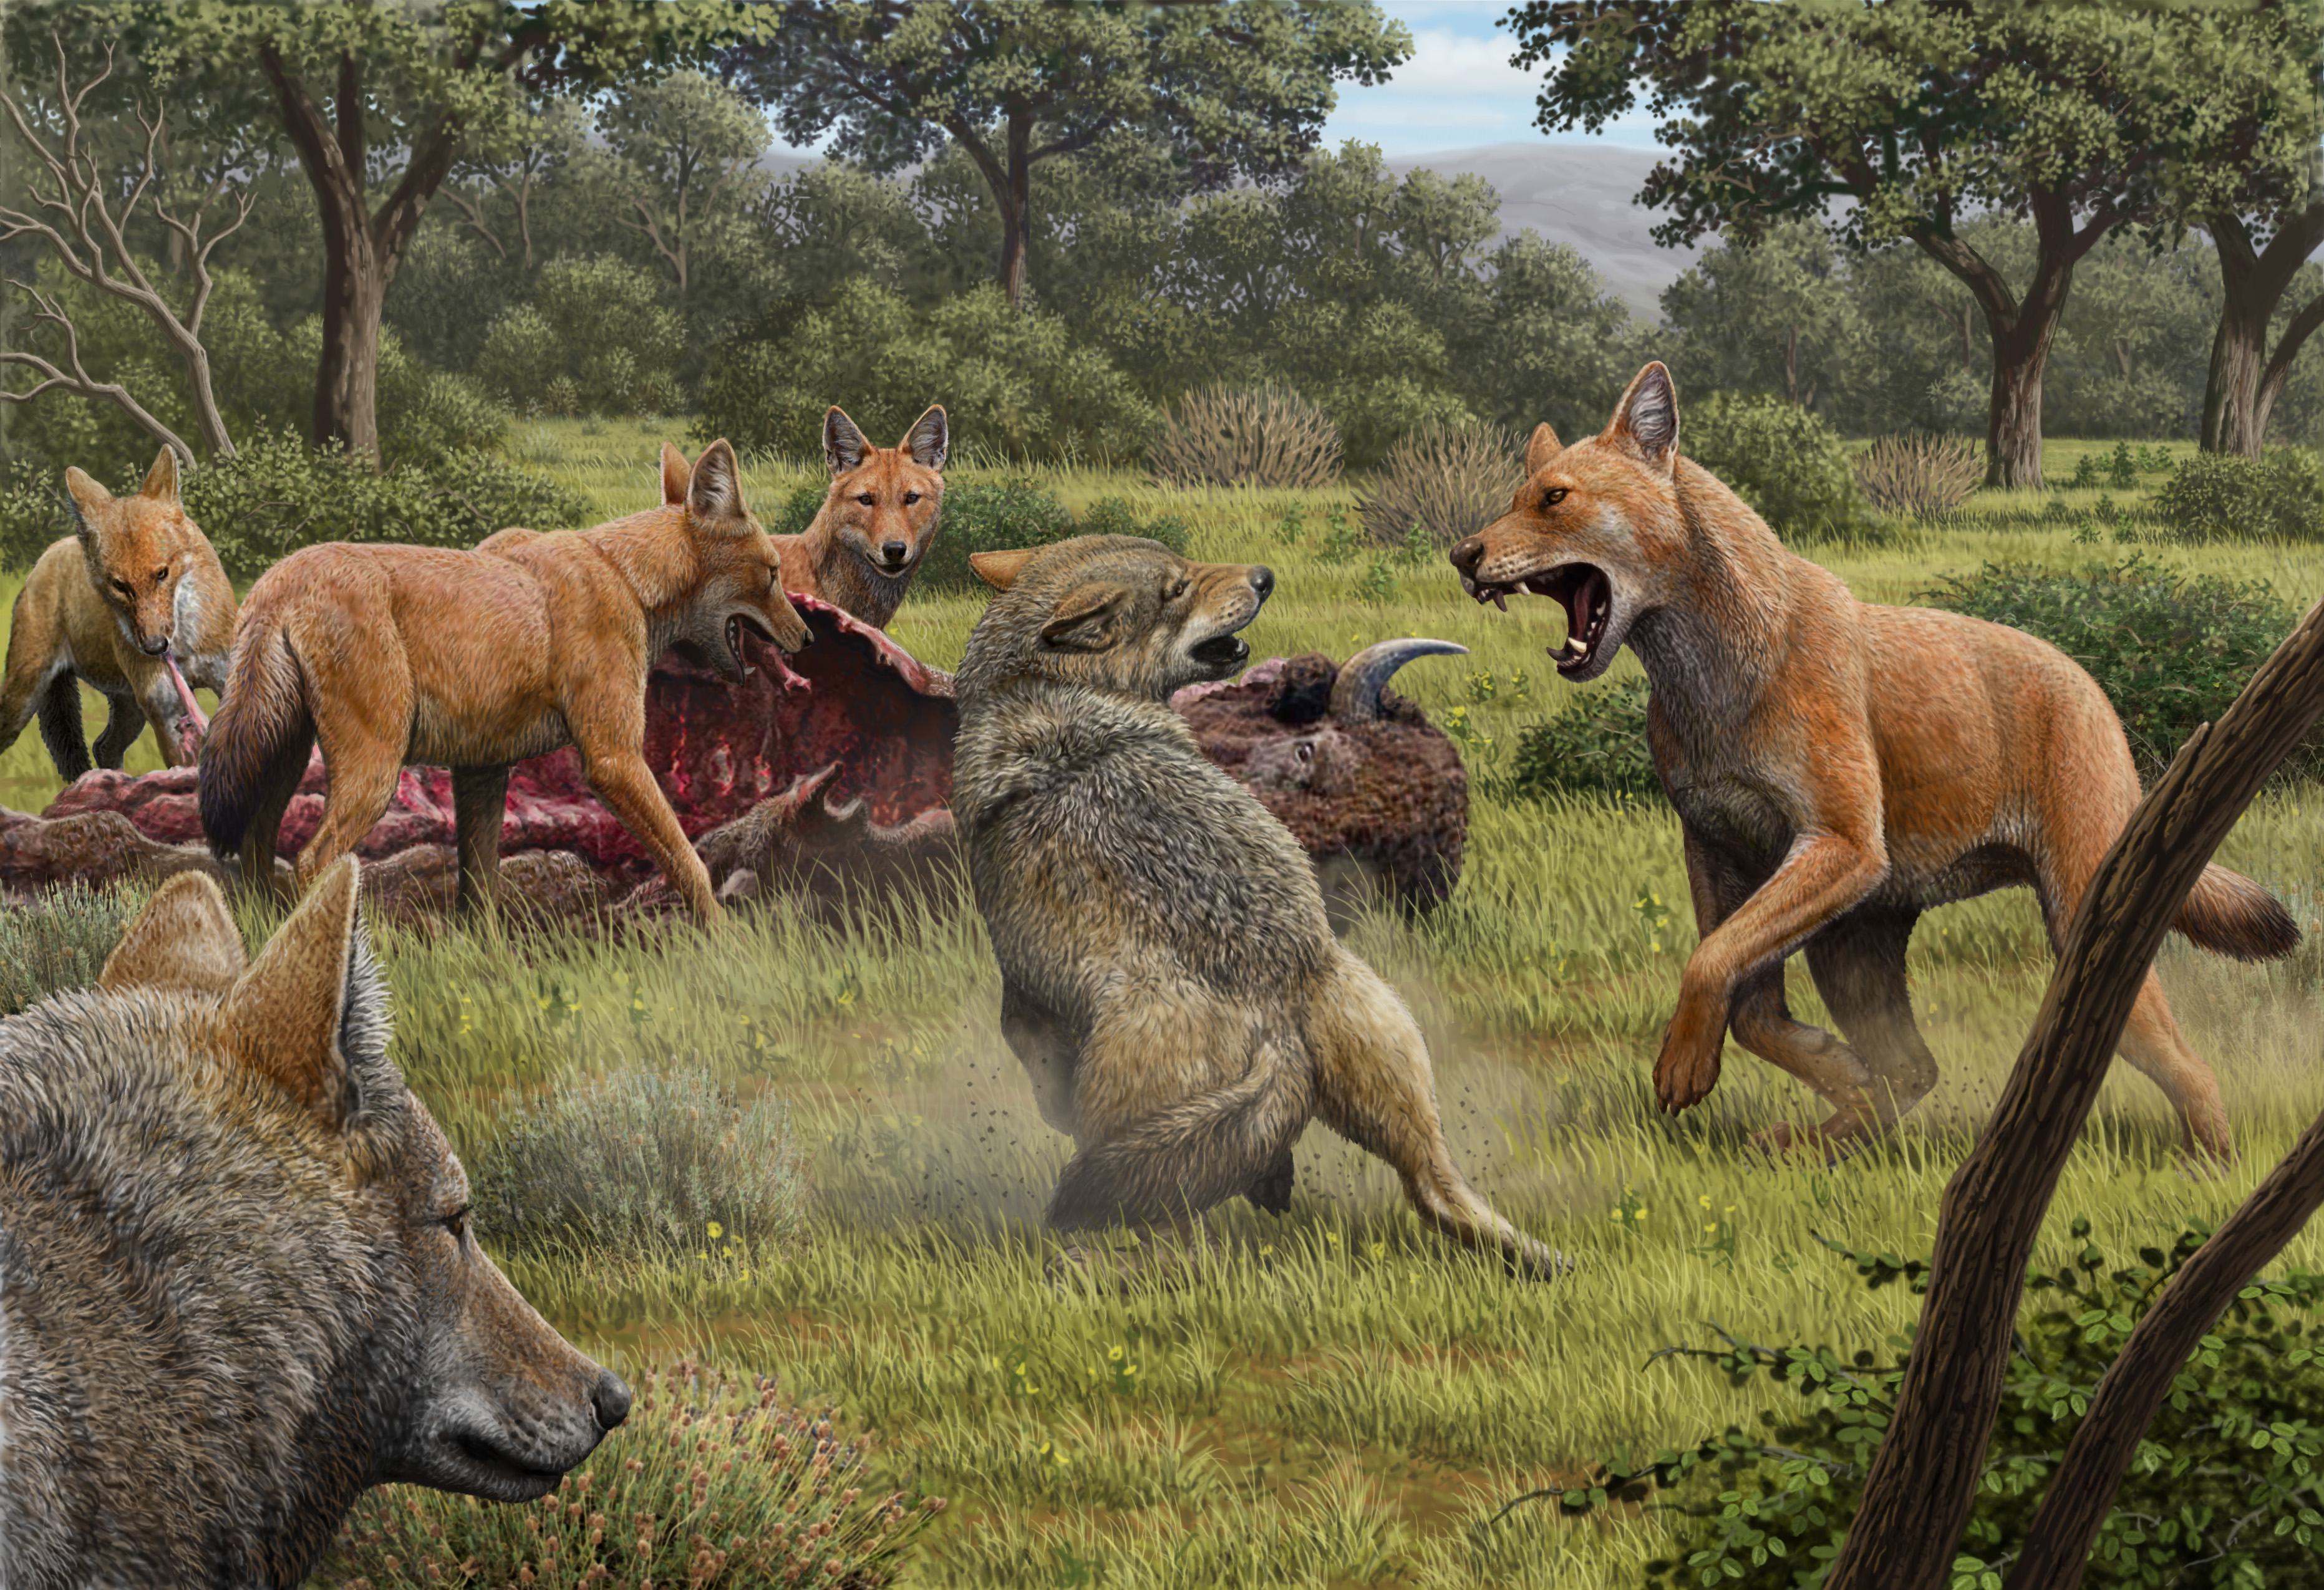 Mauricio Antón/Nature. Somewhere in Southwestern North America during the late Pleistocene, a pack of dire wolves (Canis dirus) are feeding on their bison kill, while a pair of grey wolves (Canis lupus) approach in the hopes of scavenging. One of the dire wolves rushes in to confront the grey wolves, and their confrontation allows a comparison of the bigger, larger-headed and reddish-brown dire wolf with its smaller, grey relative.